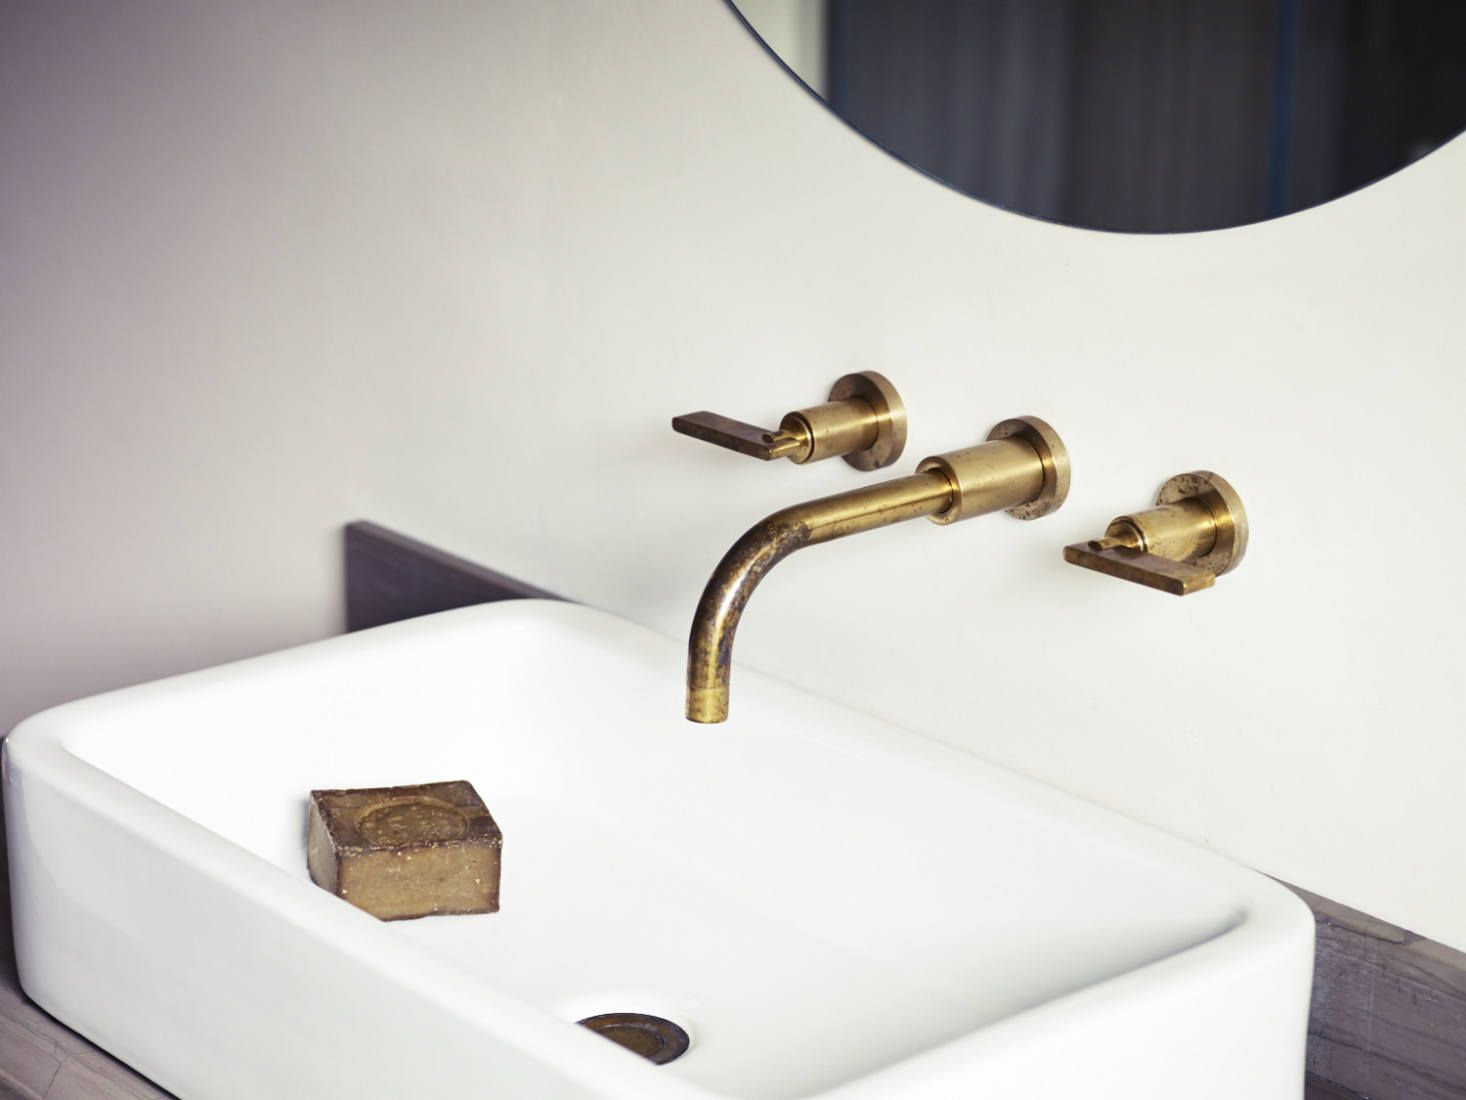 Handmade Faucets And Taps From Studio Ore In England Remodelista Bathroom Taps Wall Mounted Taps Wall Mounted Basins